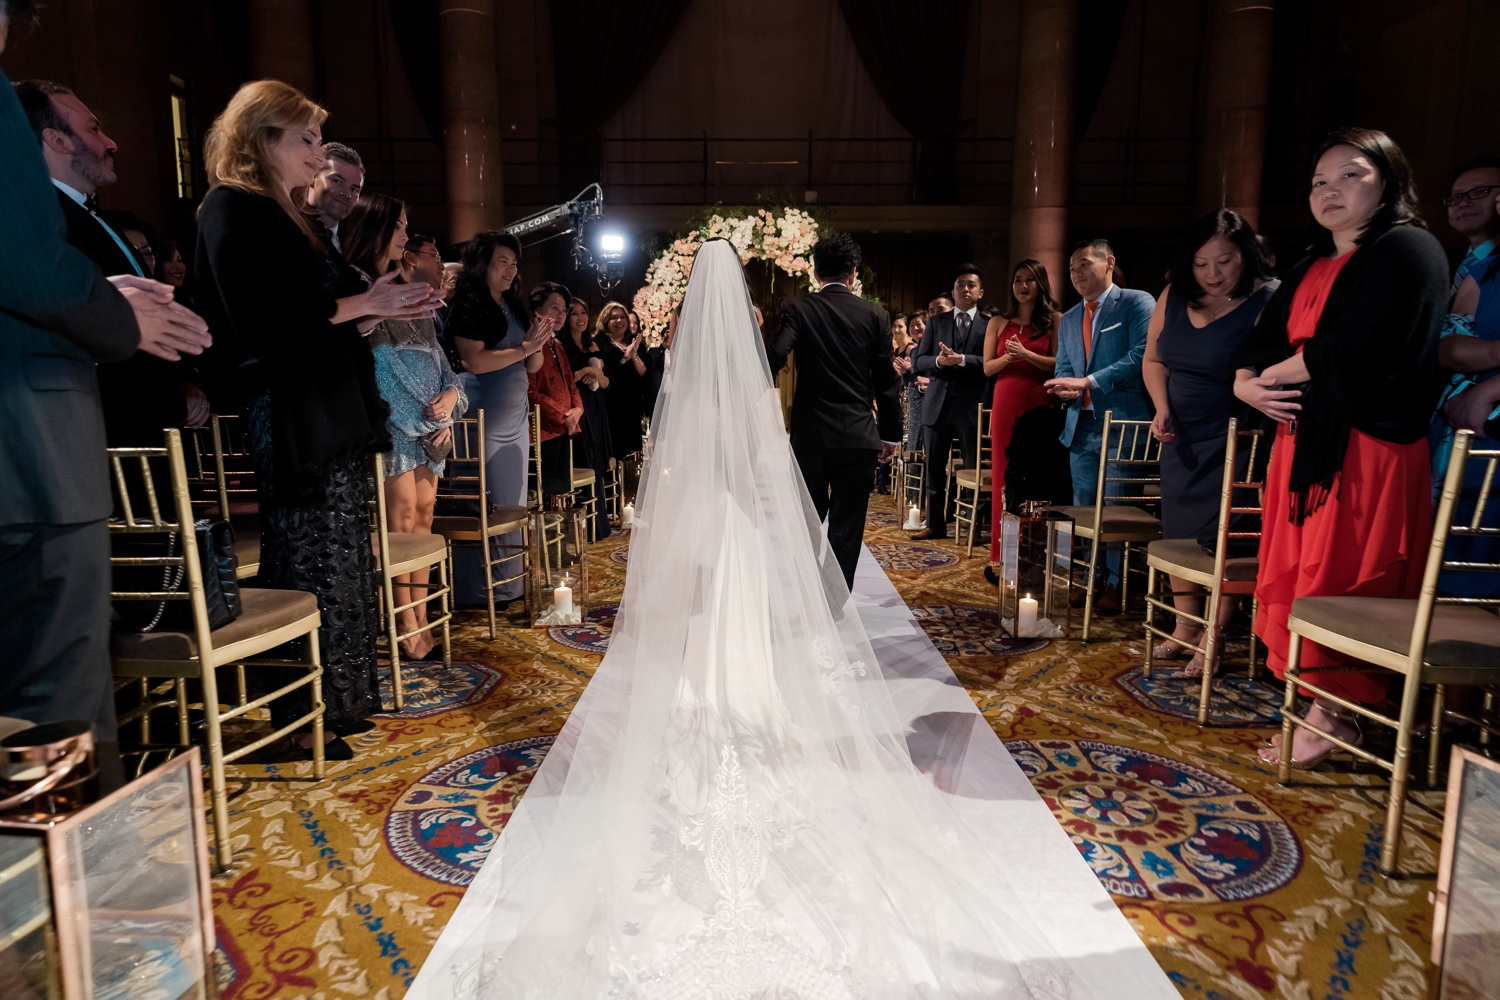 A bride and her father walking in an aisle during a wedding ceremony at Cipriani Wall Street in New York City. Wedding Dress by Pronovias